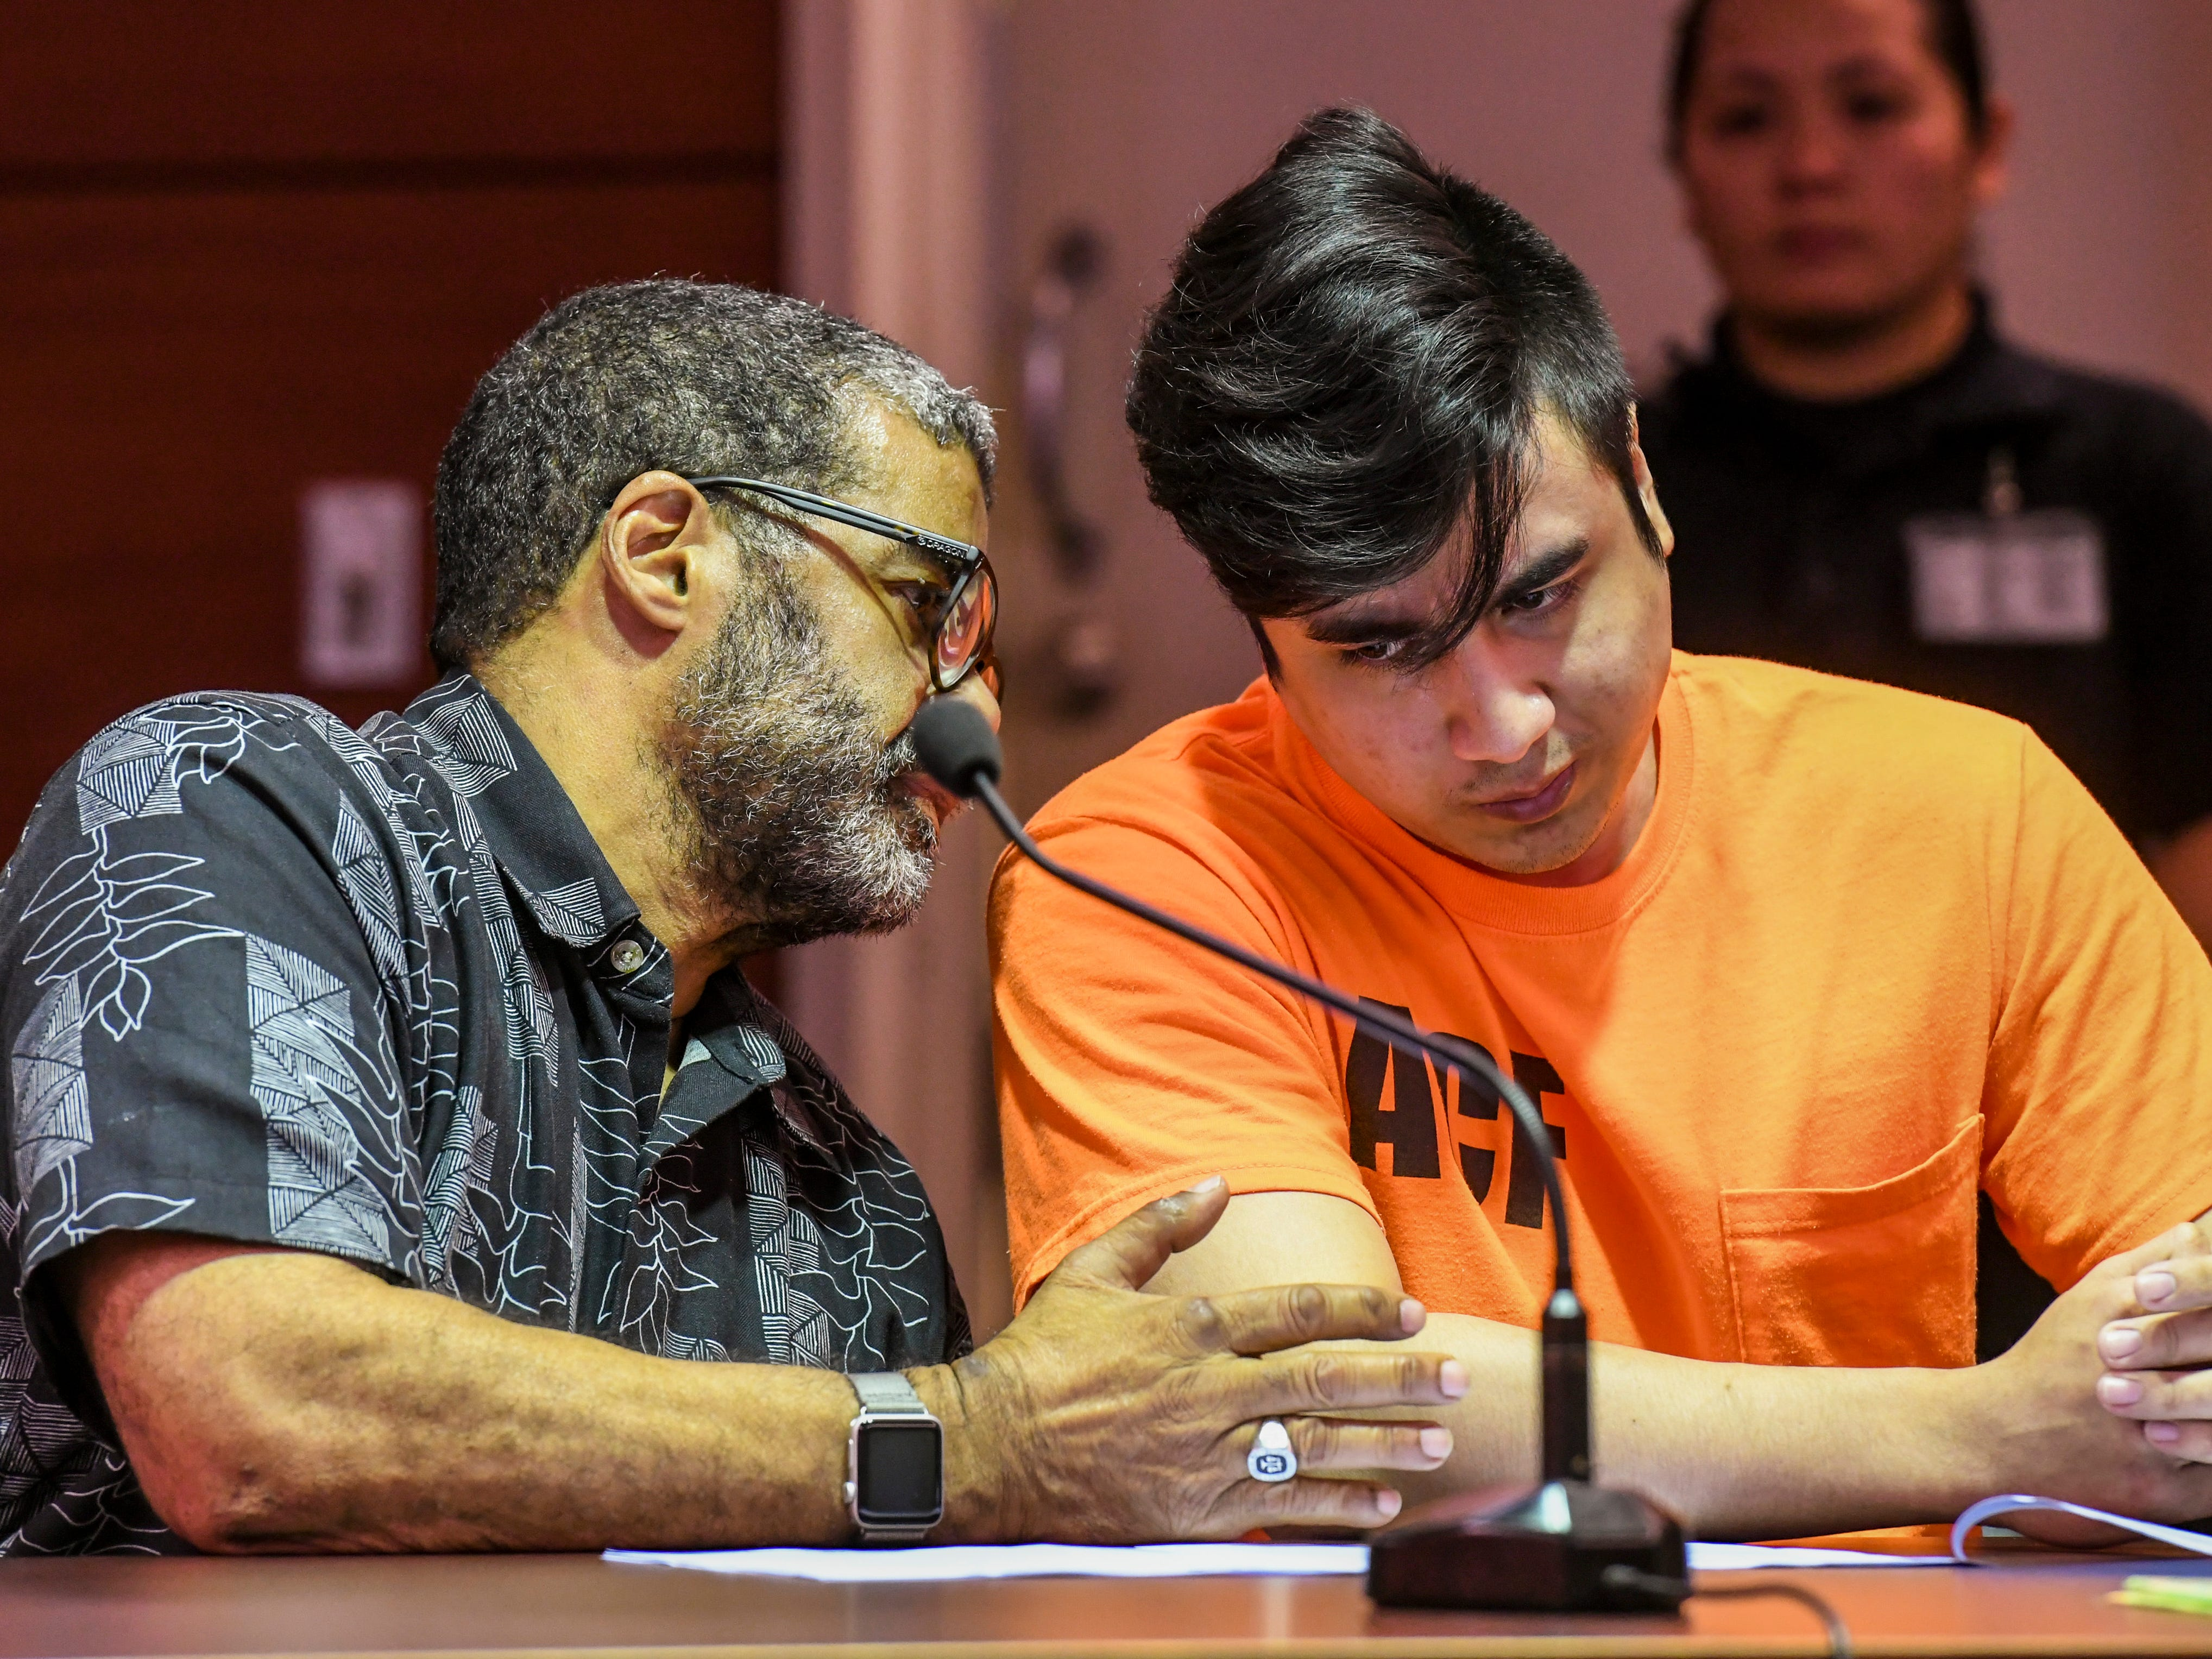 Defendant Joseph Sagdal, right, listens to advice by his attorney, Clyde Lemons Jr., during his appearance before Superior Court of Guam Judge Maria Cenzon in Hagågtña on Thursday, Dec. 6, 2018. Sagdal faced charges in the December 2017 shooting deaths of Brokey Thamaso and AV Mwarecheong. During the hearing, Sagdal pleaded guilty to one count of manslaughter for the death of Mwarecheong and was sentenced to 15 years, with six years of his sentence suspended, by Judge Cenzon.